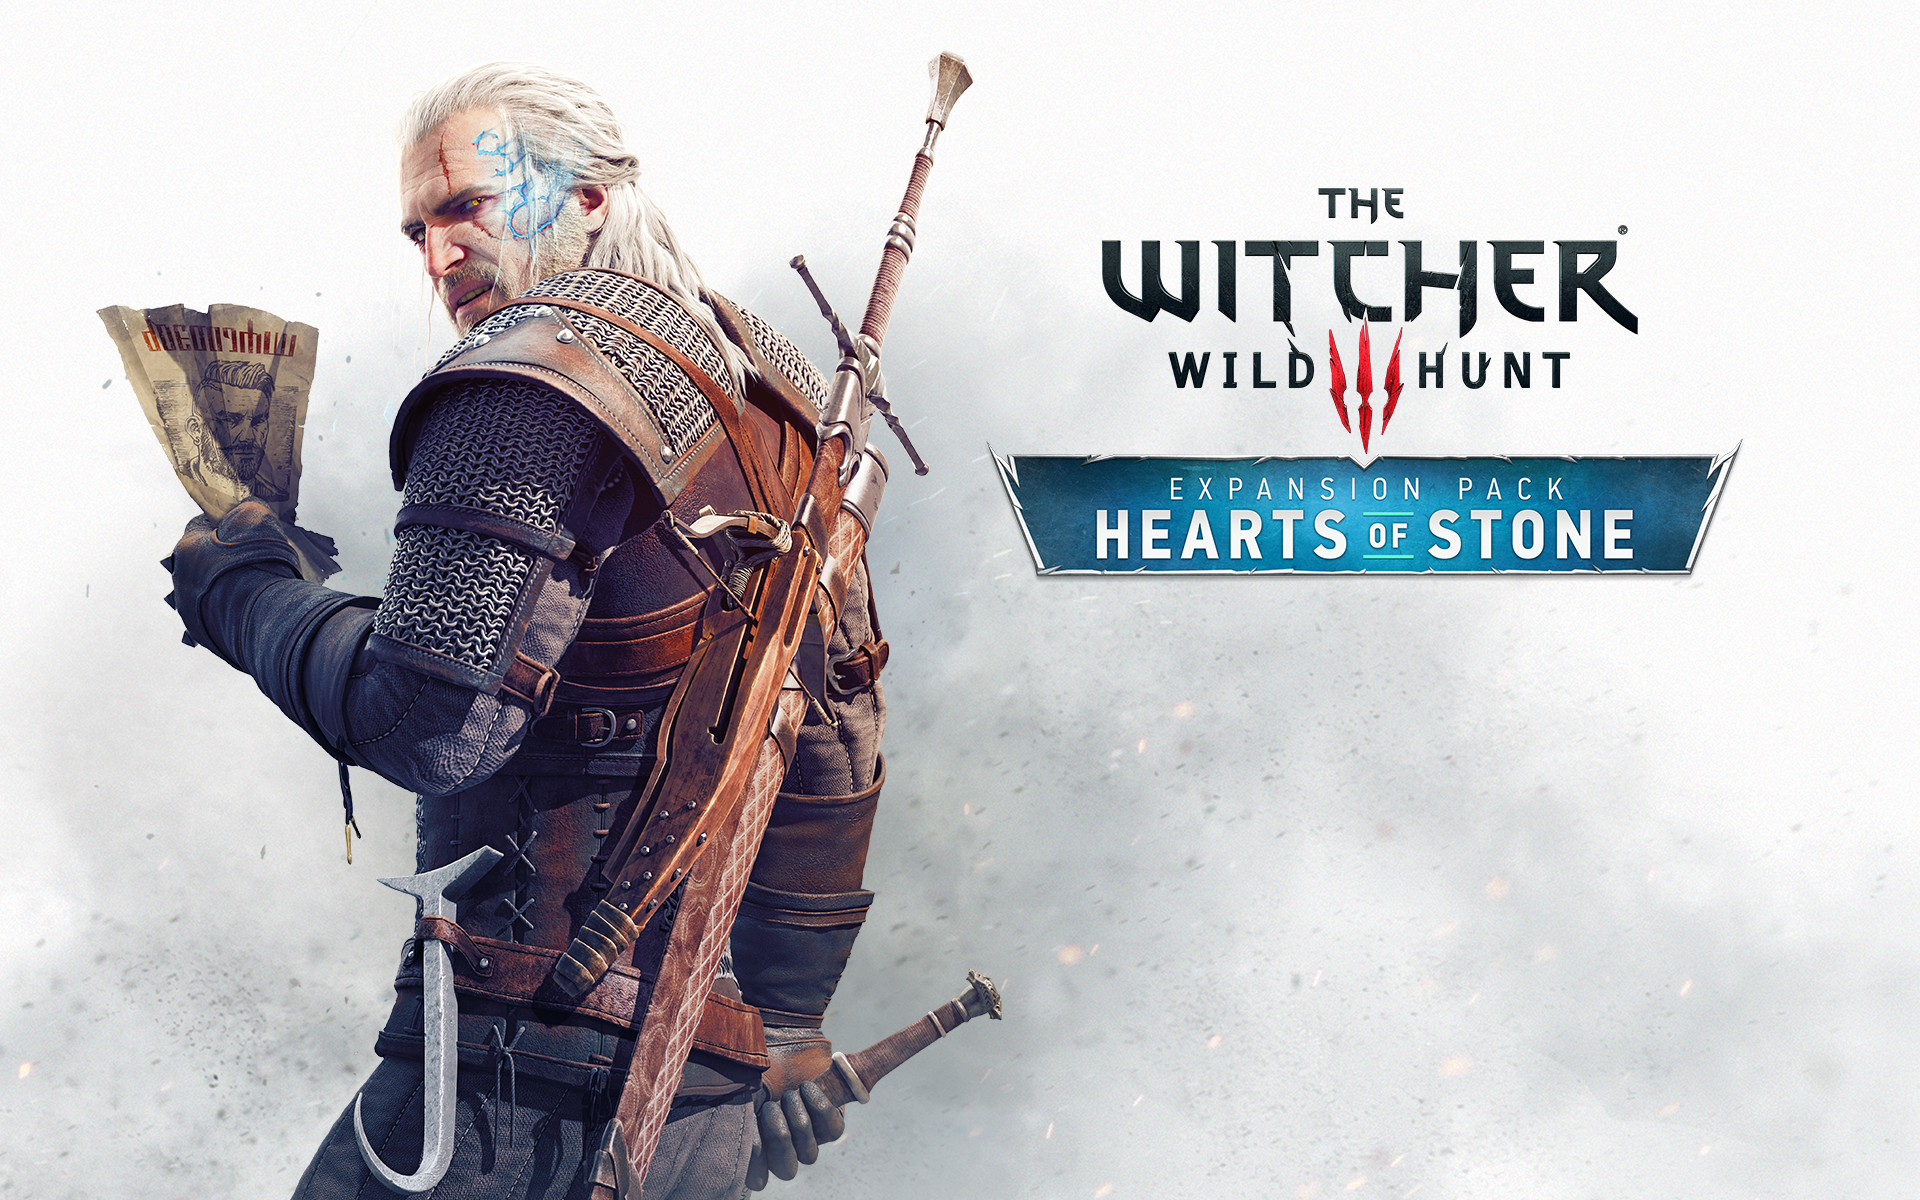 The Witcher 3 Wild Hunt ficial Website